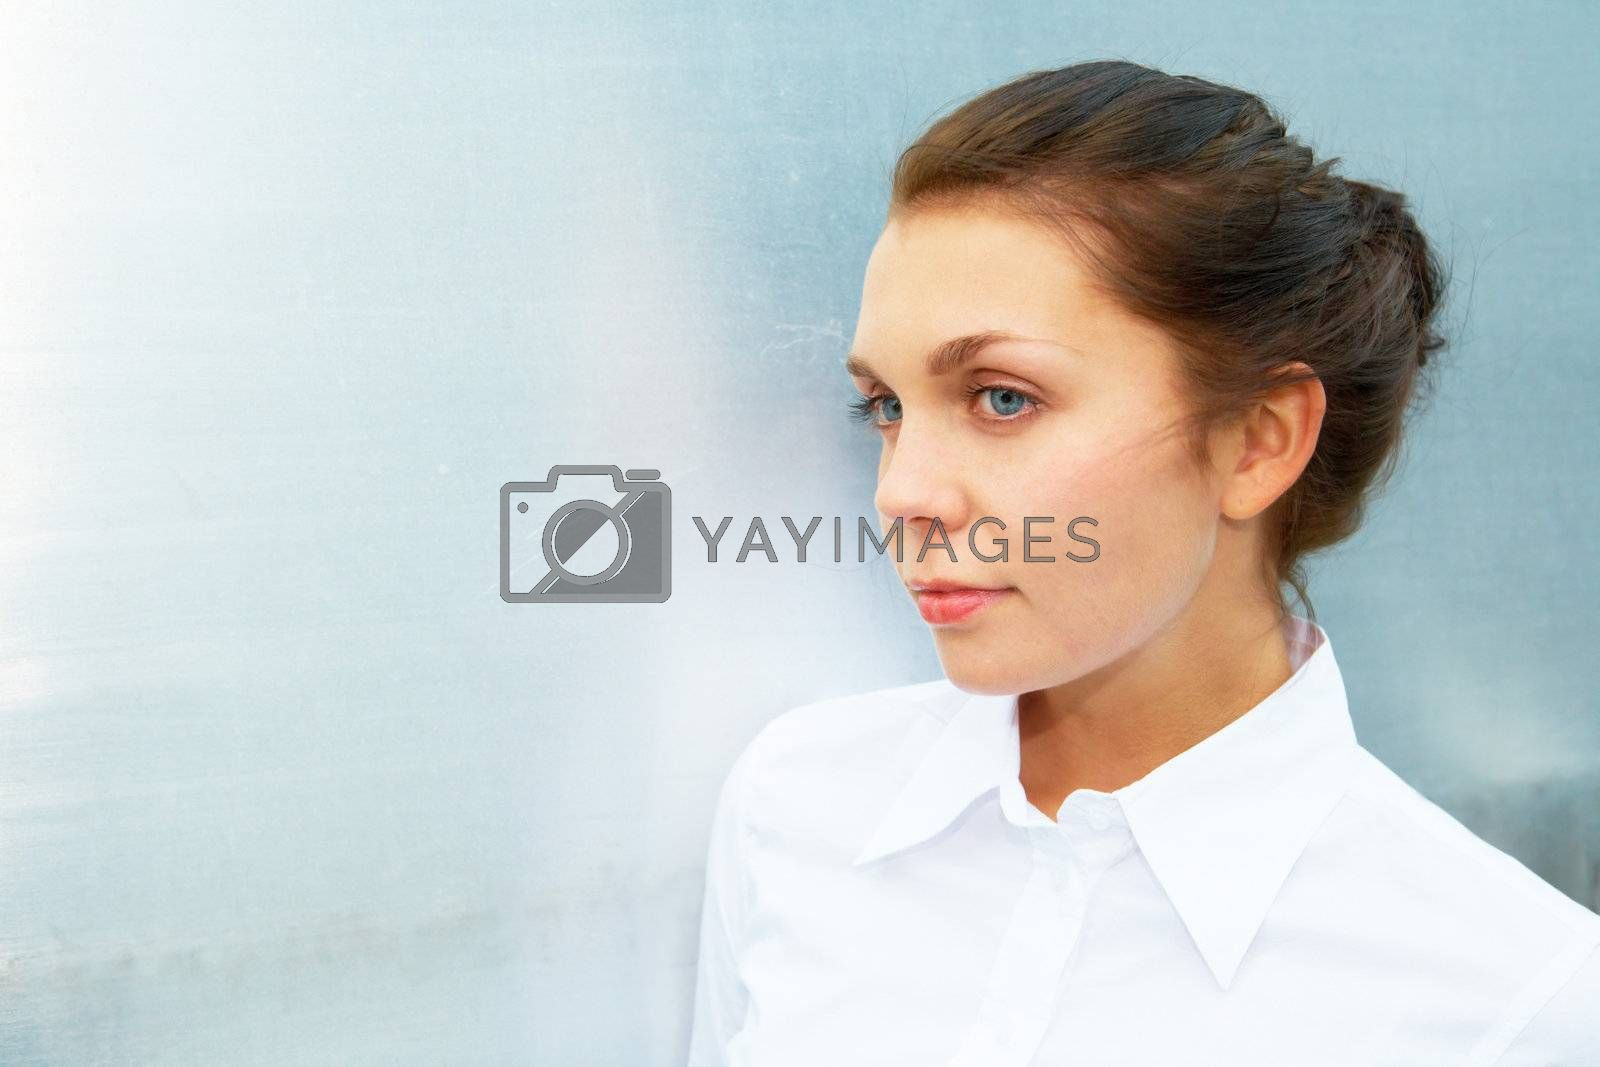 Royalty free image of Young Woman Portrait by Luminis